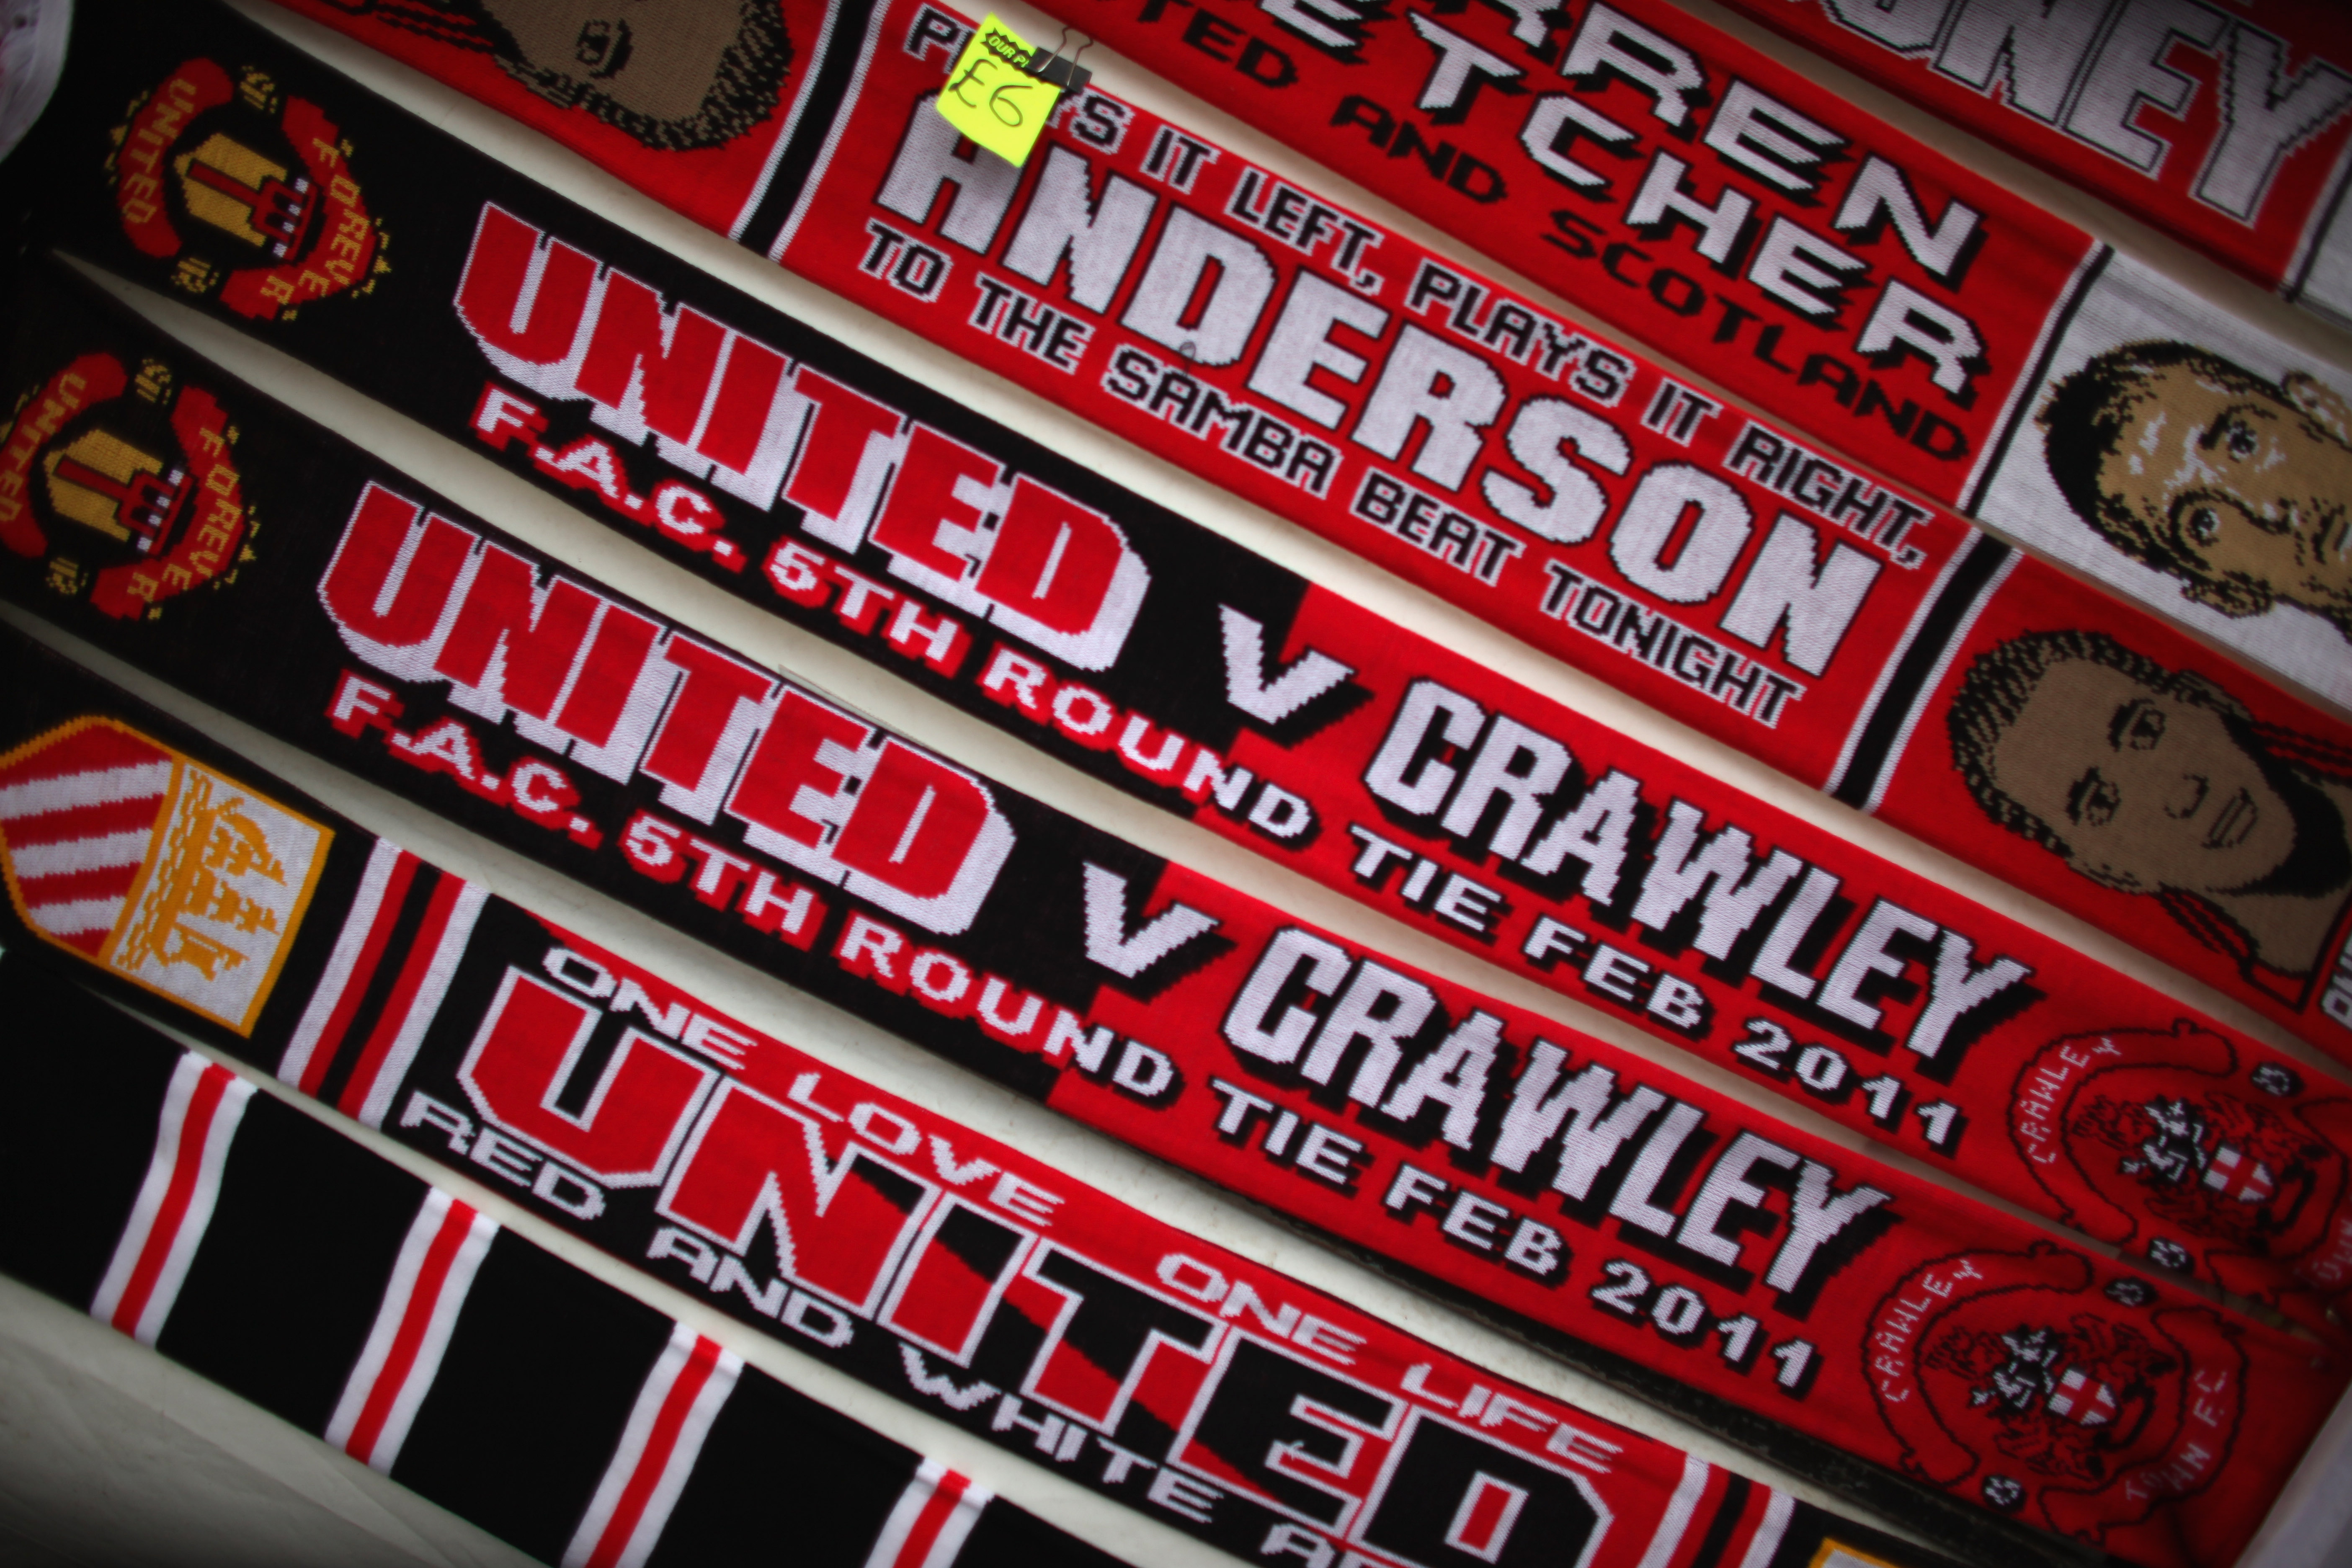 MANCHESTER, UNITED KINGDOM - FEBRUARY 19:  Commemorative scarves for sale outside Old Trafford before Crawley Town take on Manchester United in the FA Cup fifth round on February 19, 2011 in Manchester, England. The team from West Sussex are hoping to mak